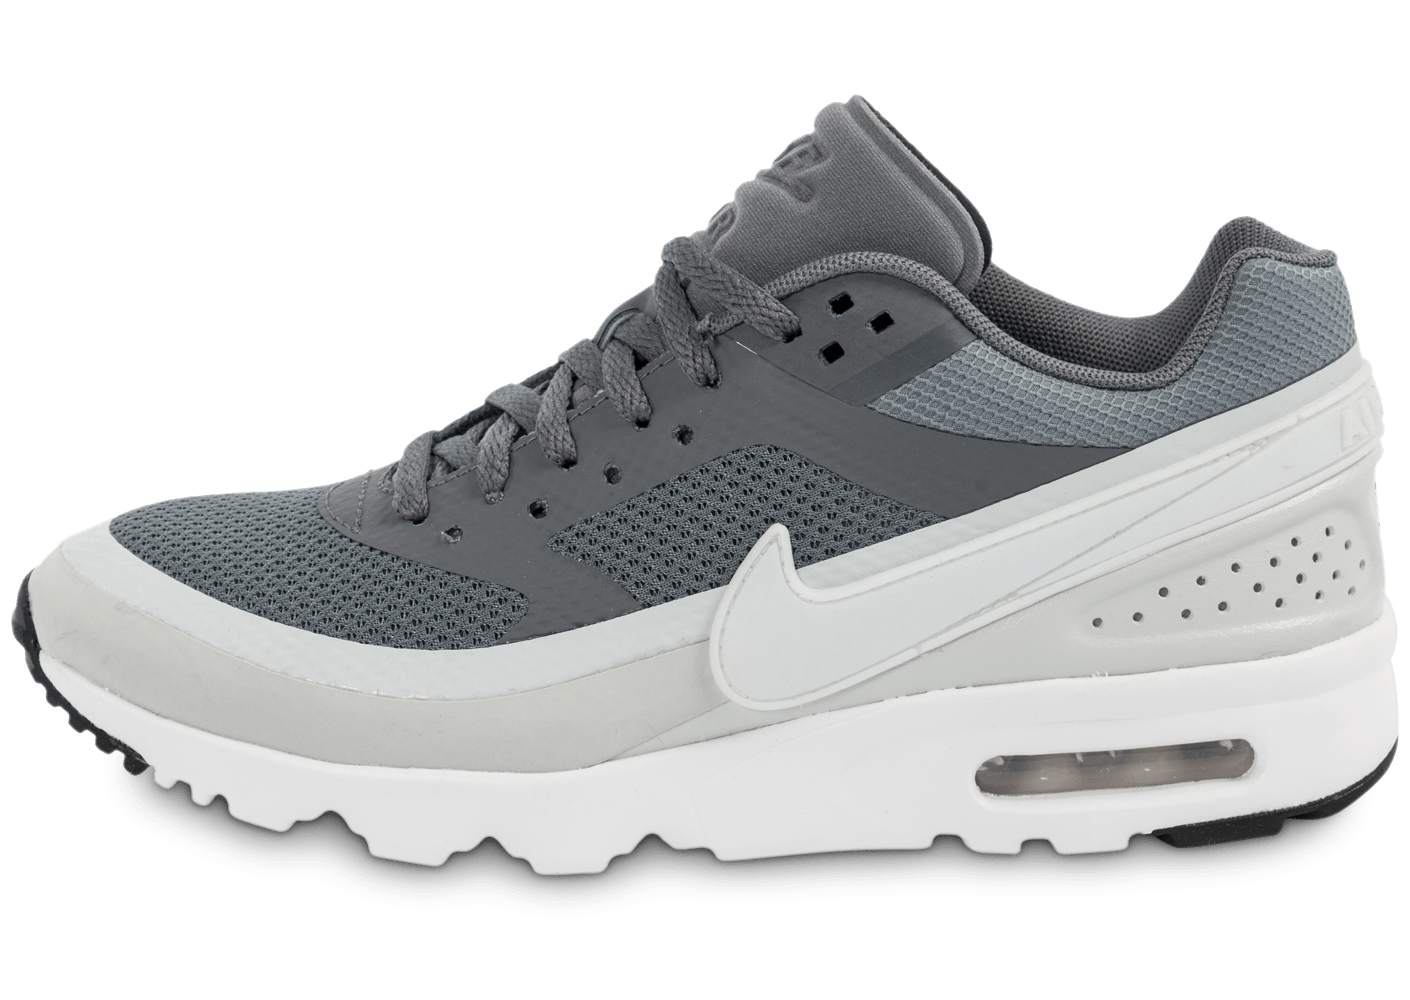 Femme Synthétique Nike Air Max Bw Ultra W Cool Grey Gris